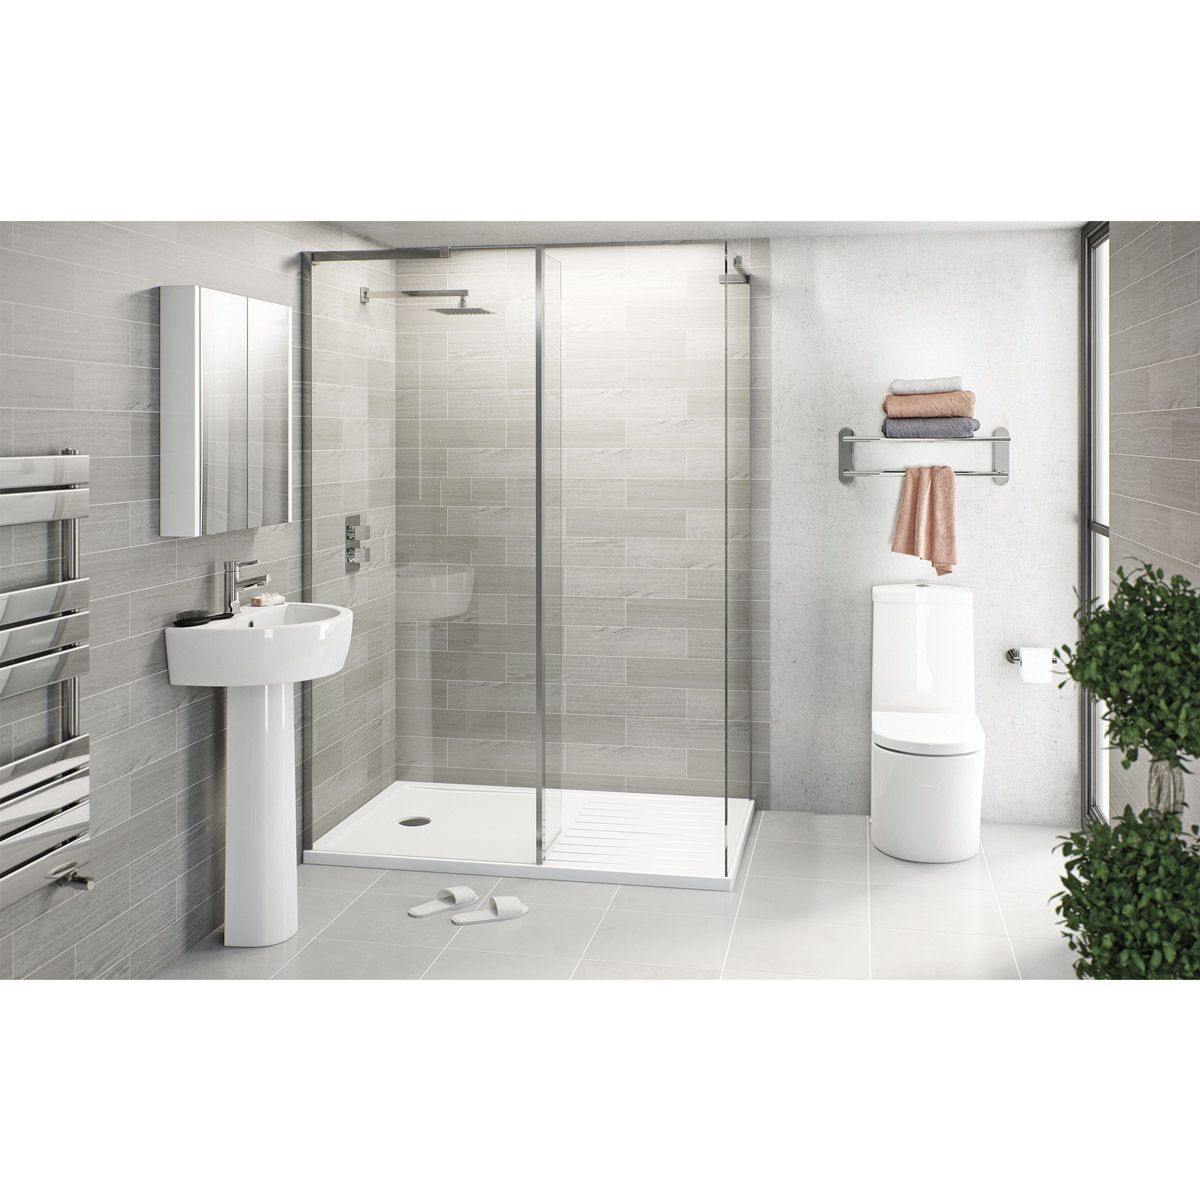 Click Here To Find Out More About Mode Tate Ensuite Suite With Enclosure And Tray 589 Shower Enclosure Walk In Shower Enclosures Small Bathroom Solutions